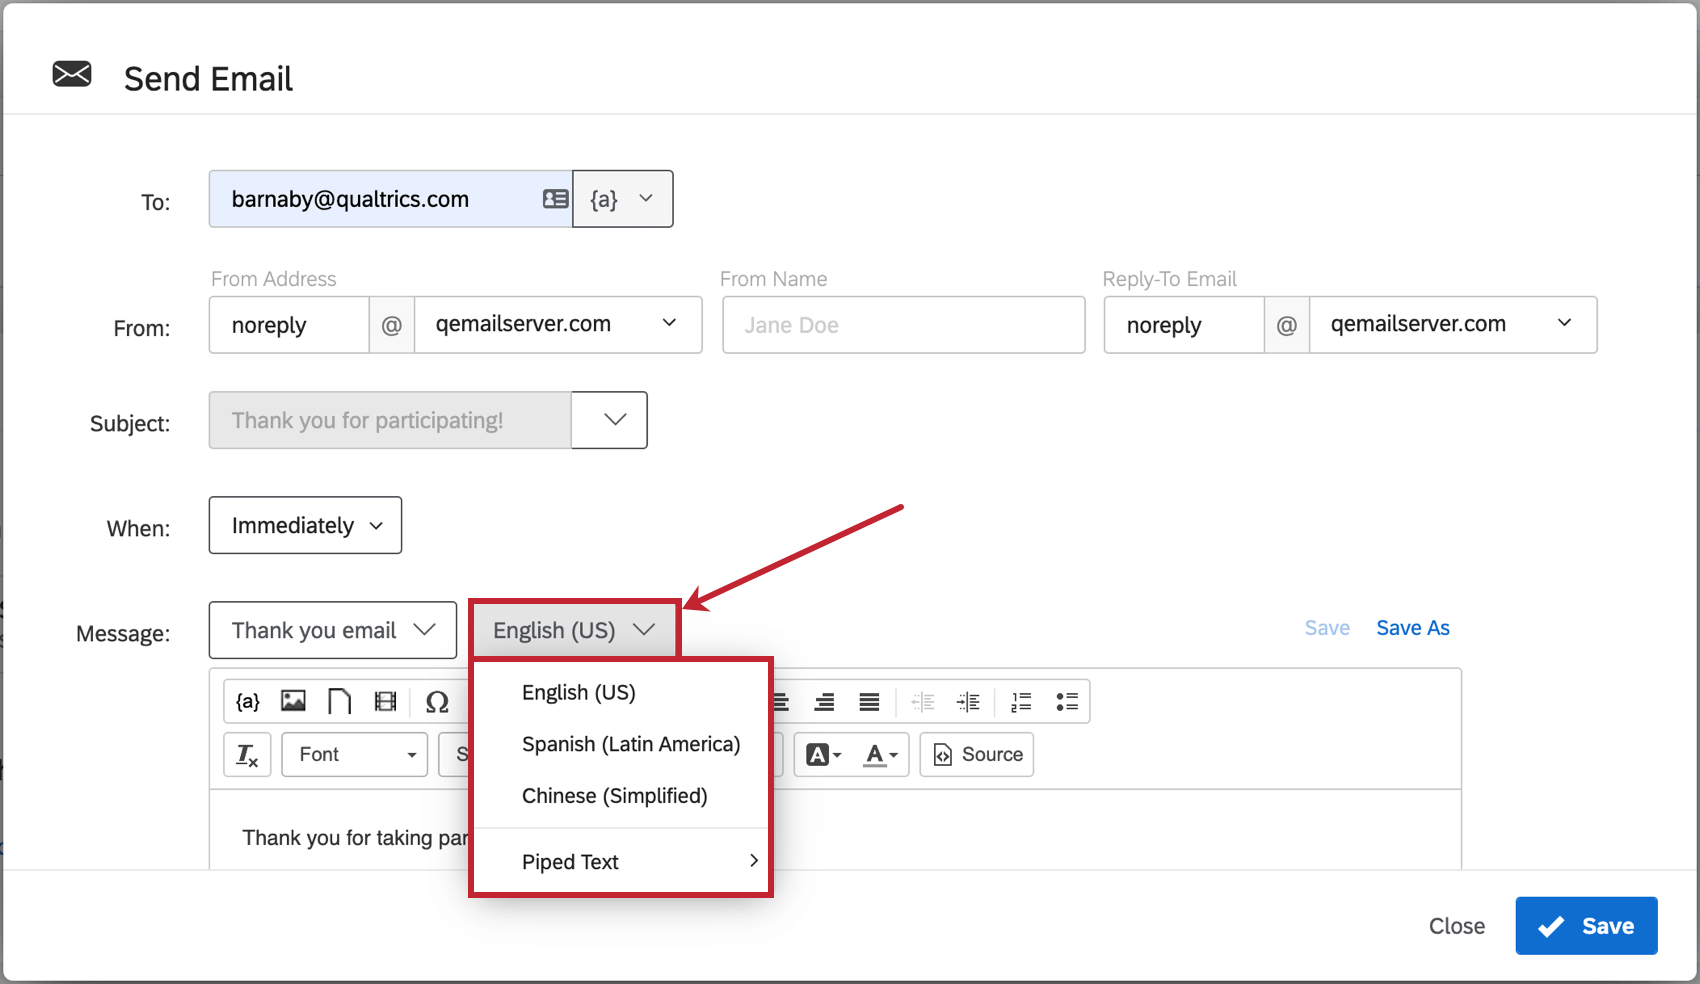 Dropdown next to message line expanded to show translation and piped text options